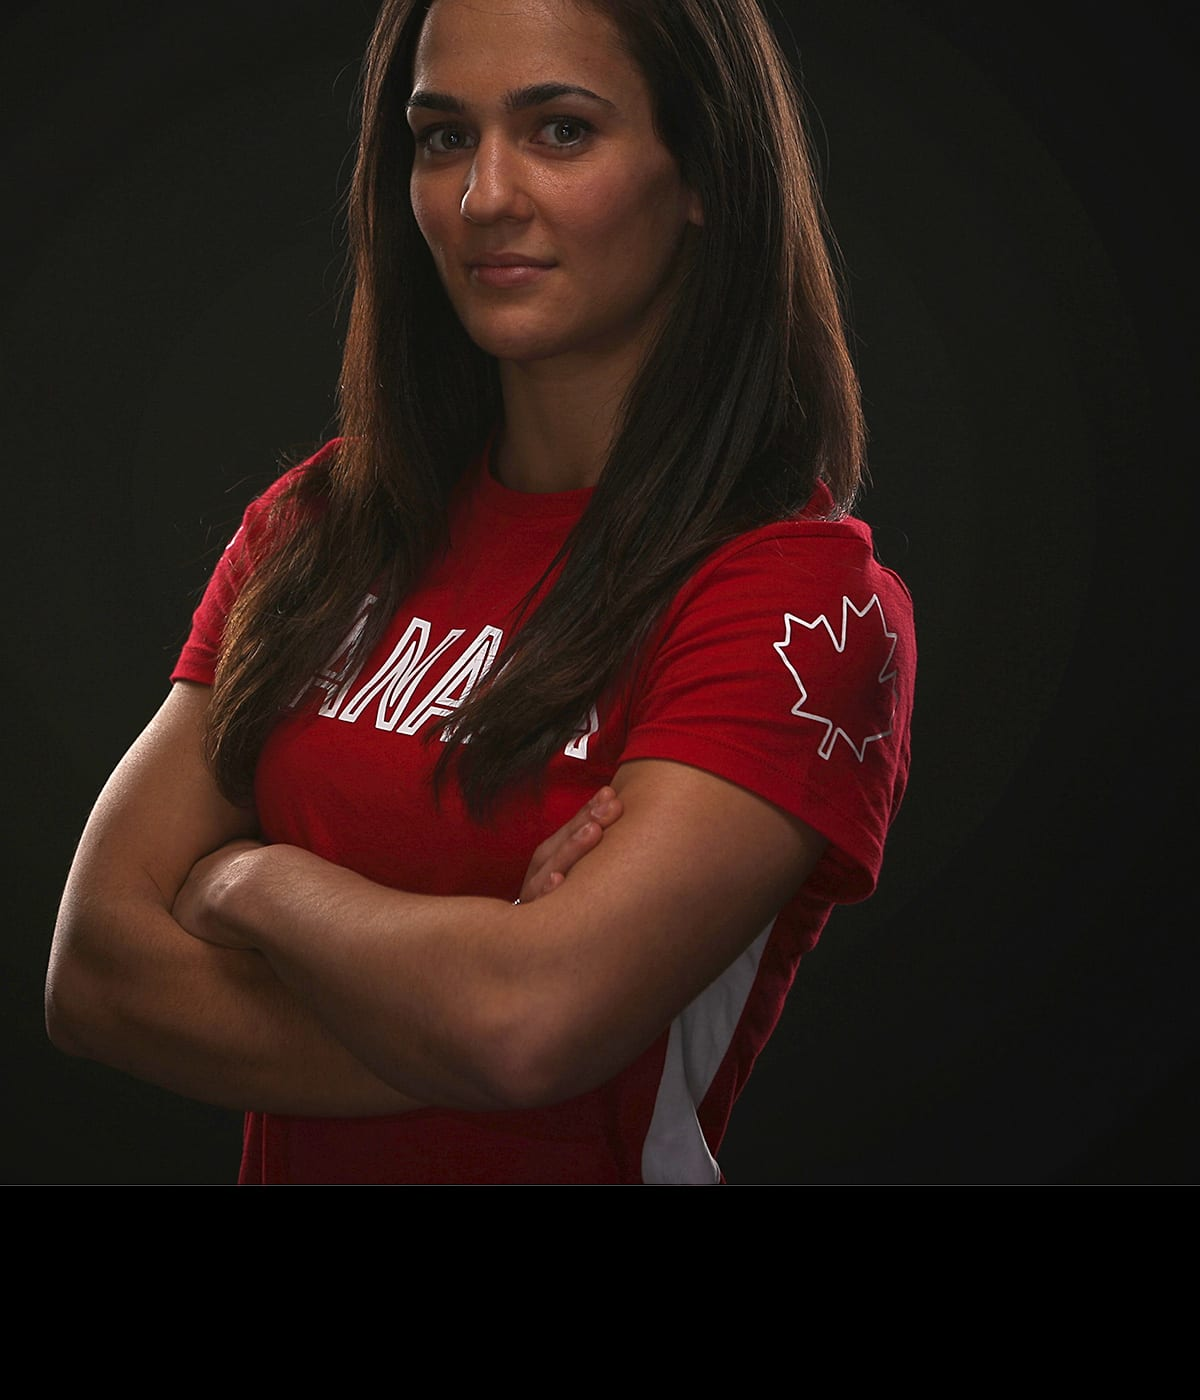 Belief becomes Olympic reality for Canadian wrestler Jasmine Mian